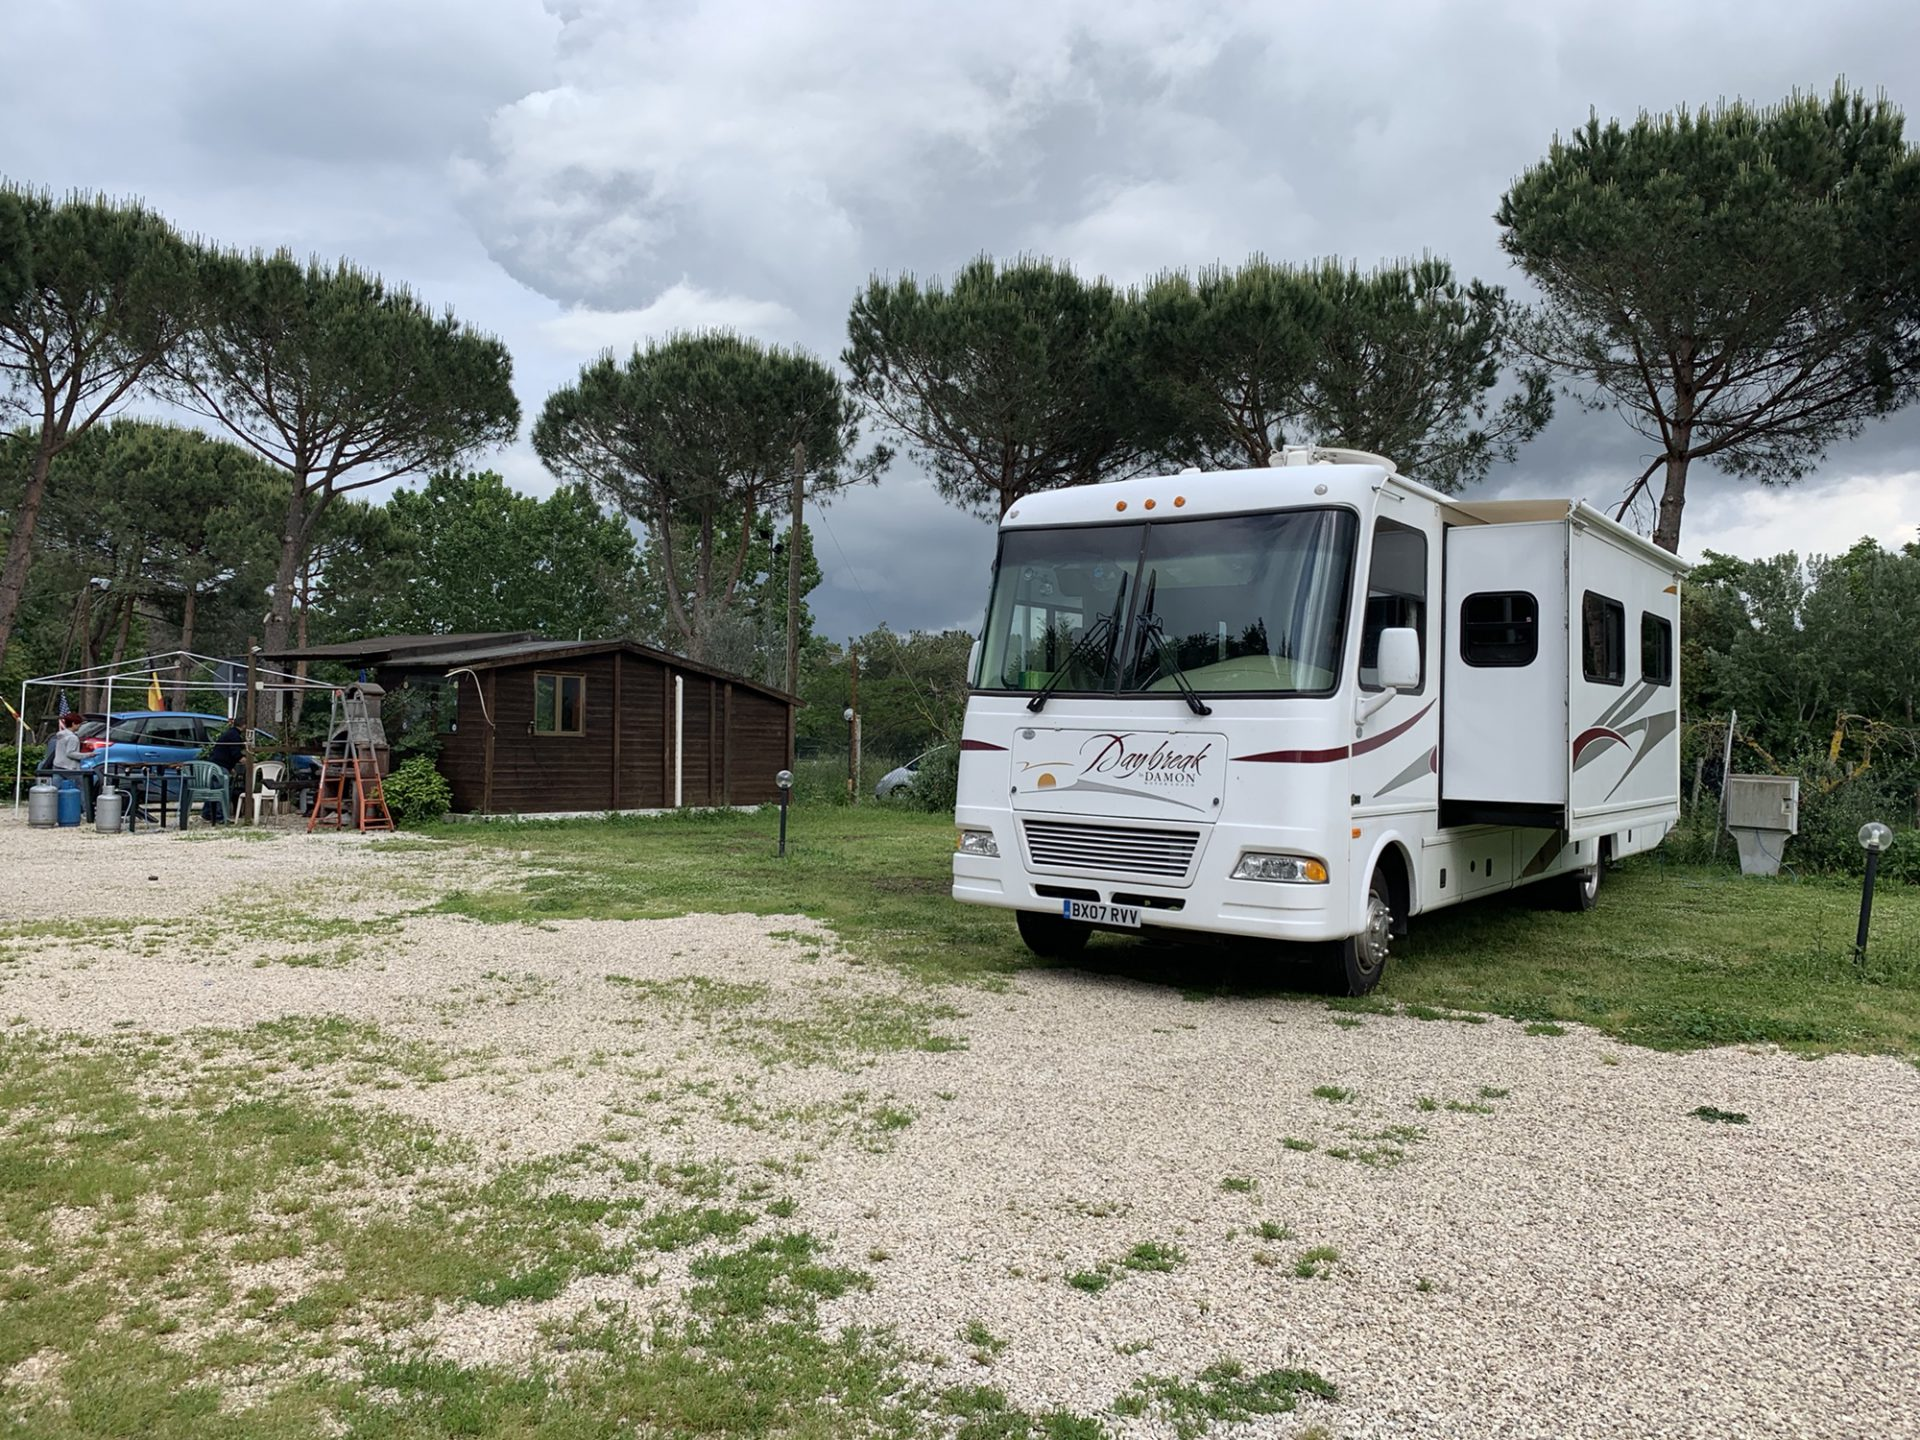 Our RV pitched on the Mira Lago camper club site